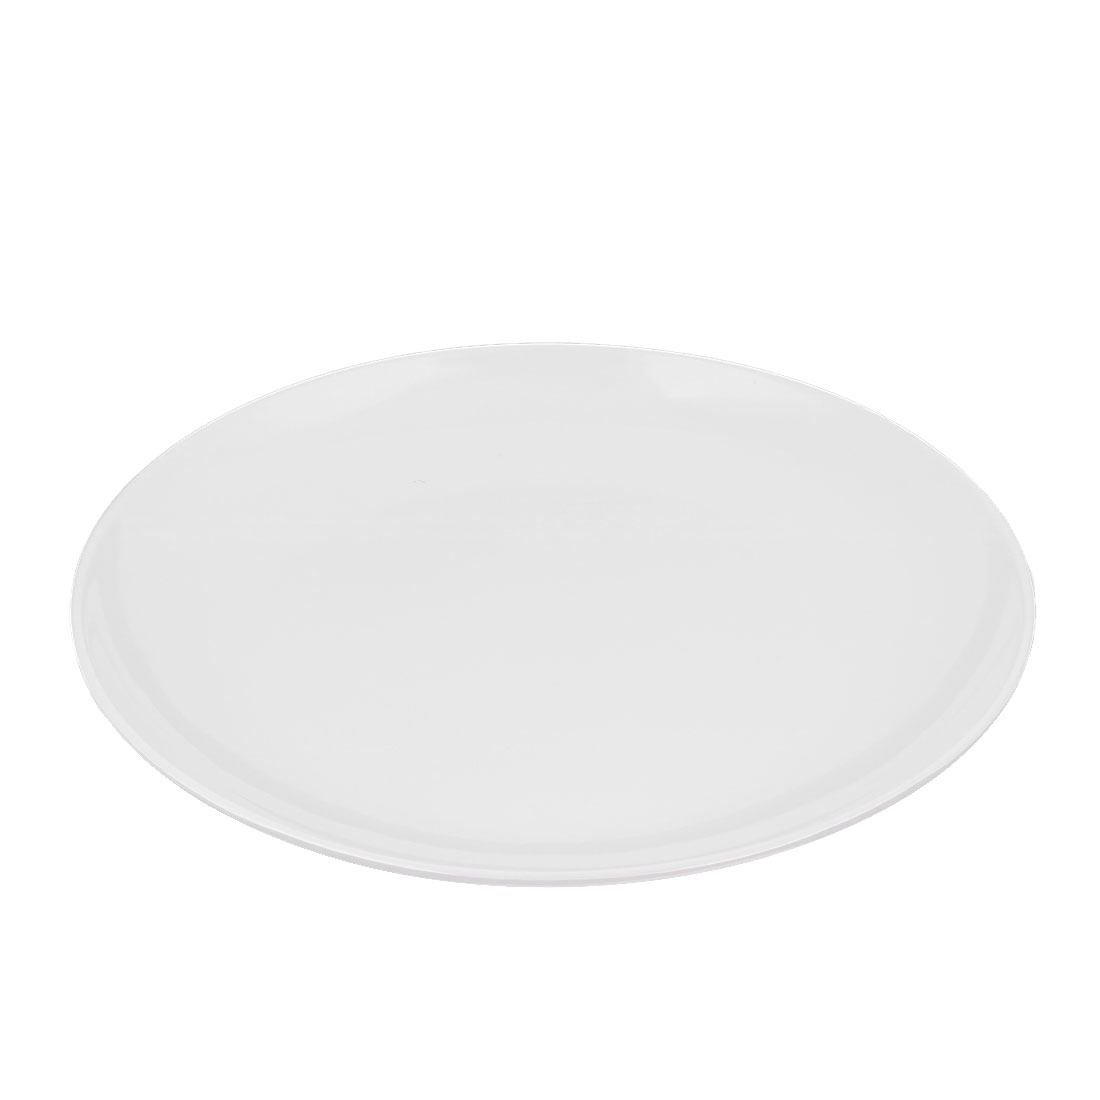 Dinnerware Plastic Round Shape Dish Food Container Plate White 25.5 x 2.5cm